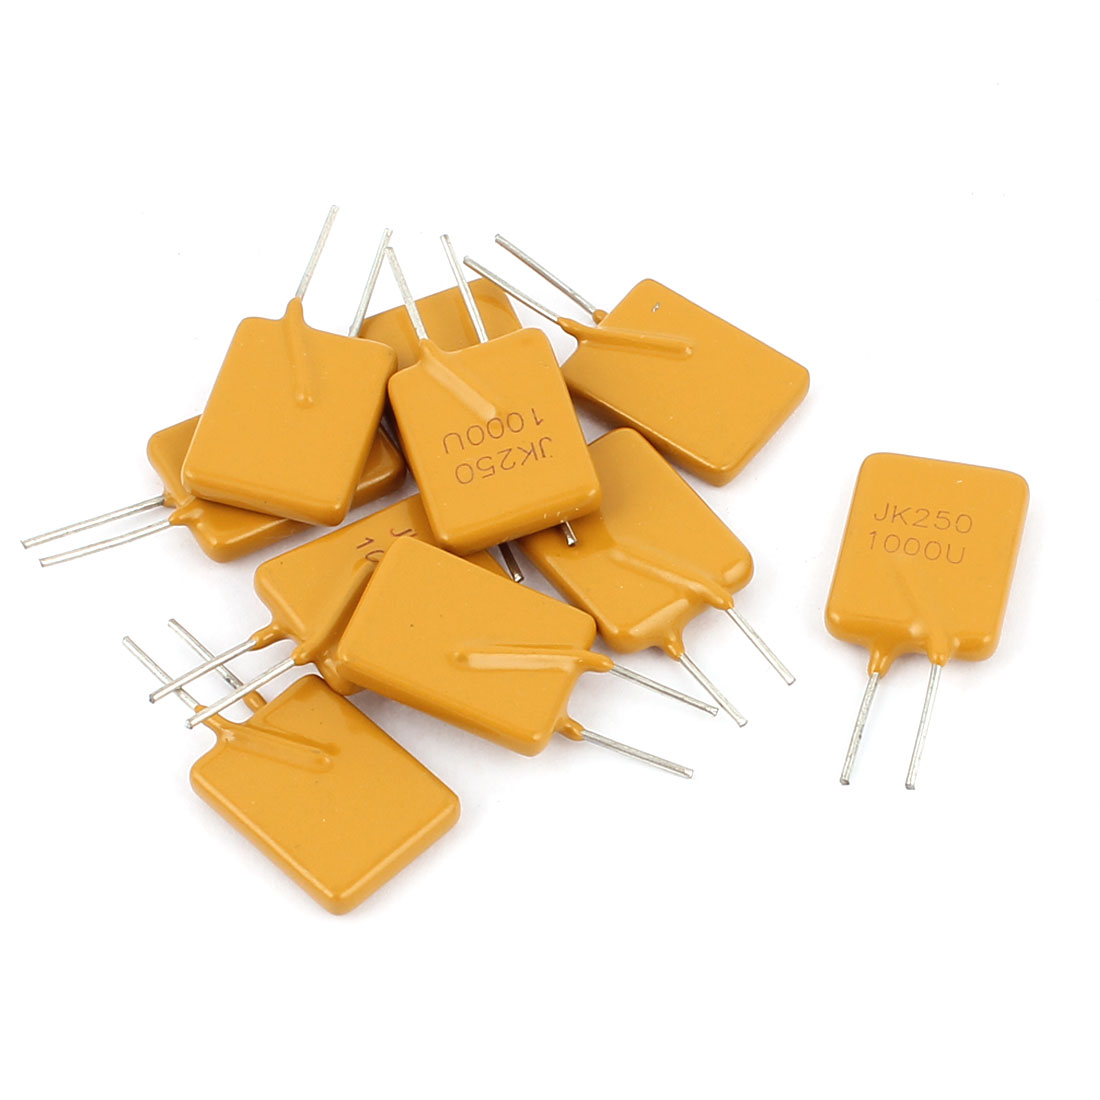 10 Pcs 250V 1A Resettable Fuse Radial Through Hole PPTC Polyswitch